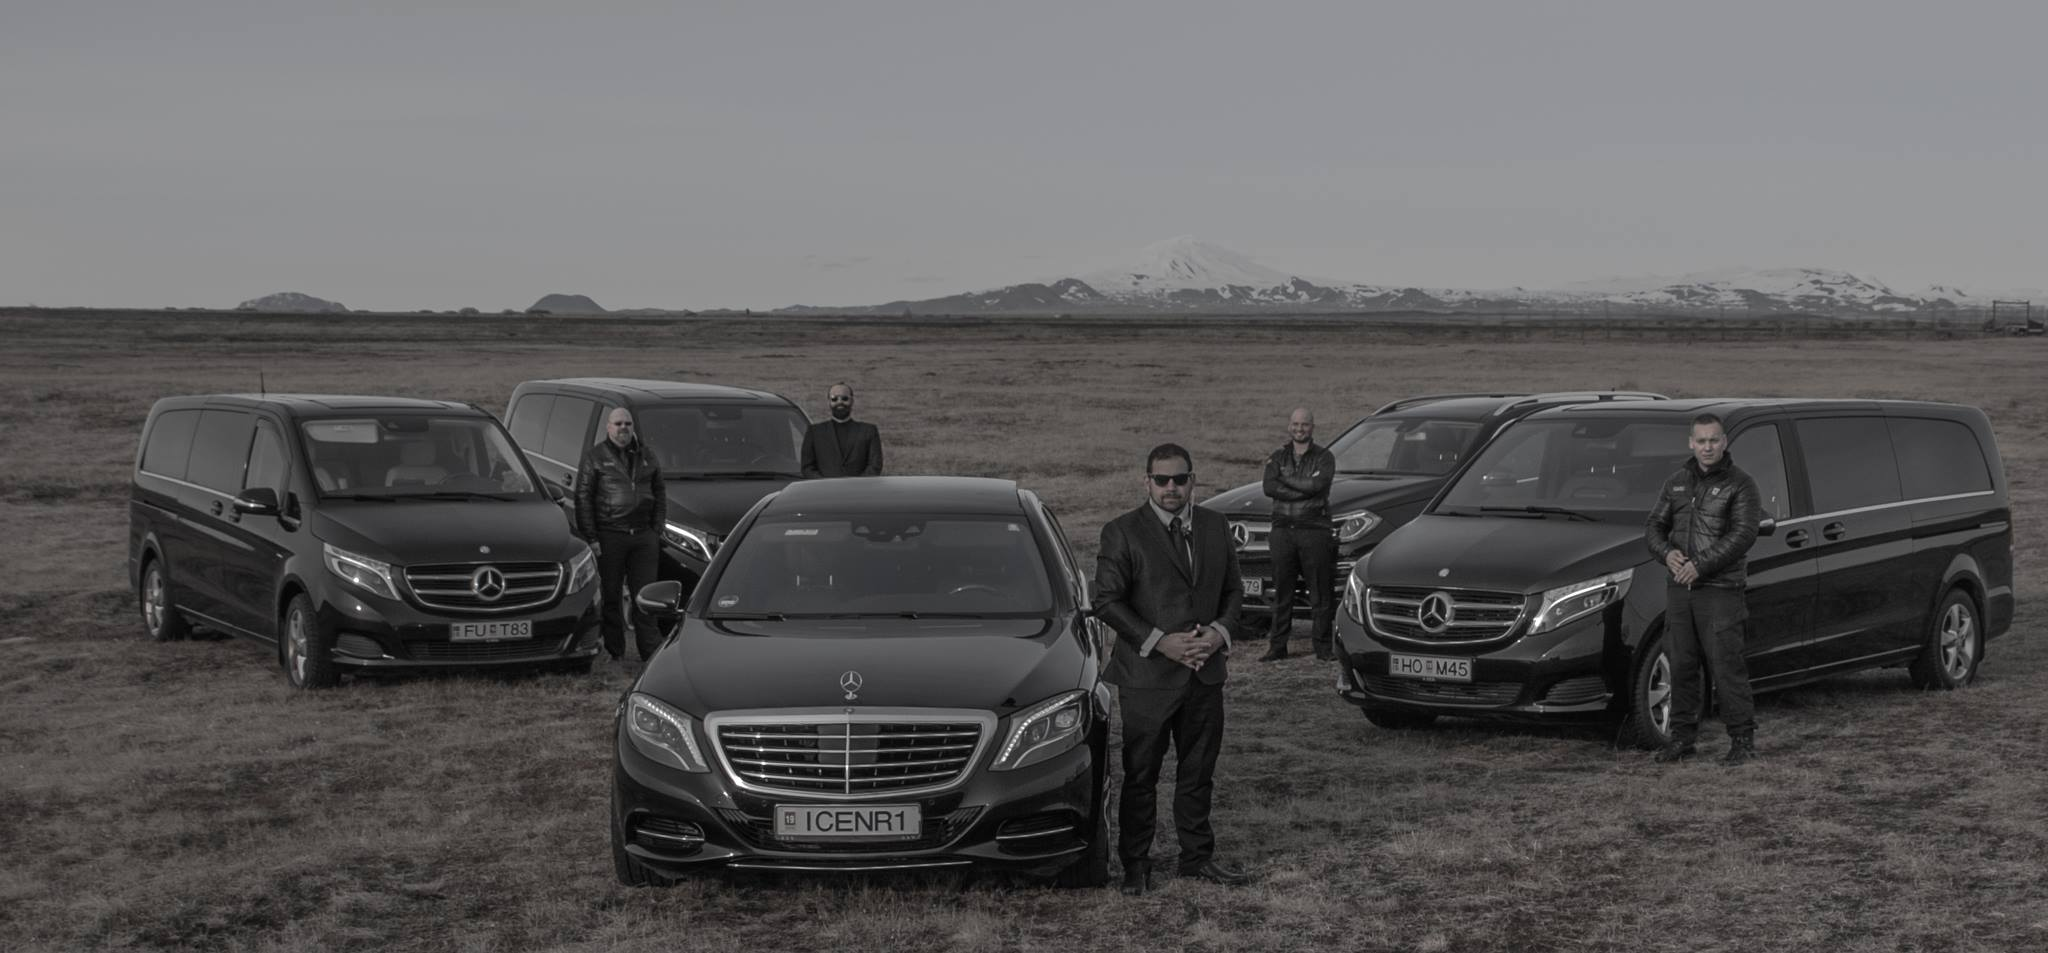 Team up with the local experts in Iceland providing luxury transportation to our family members of clients with pride since 1998